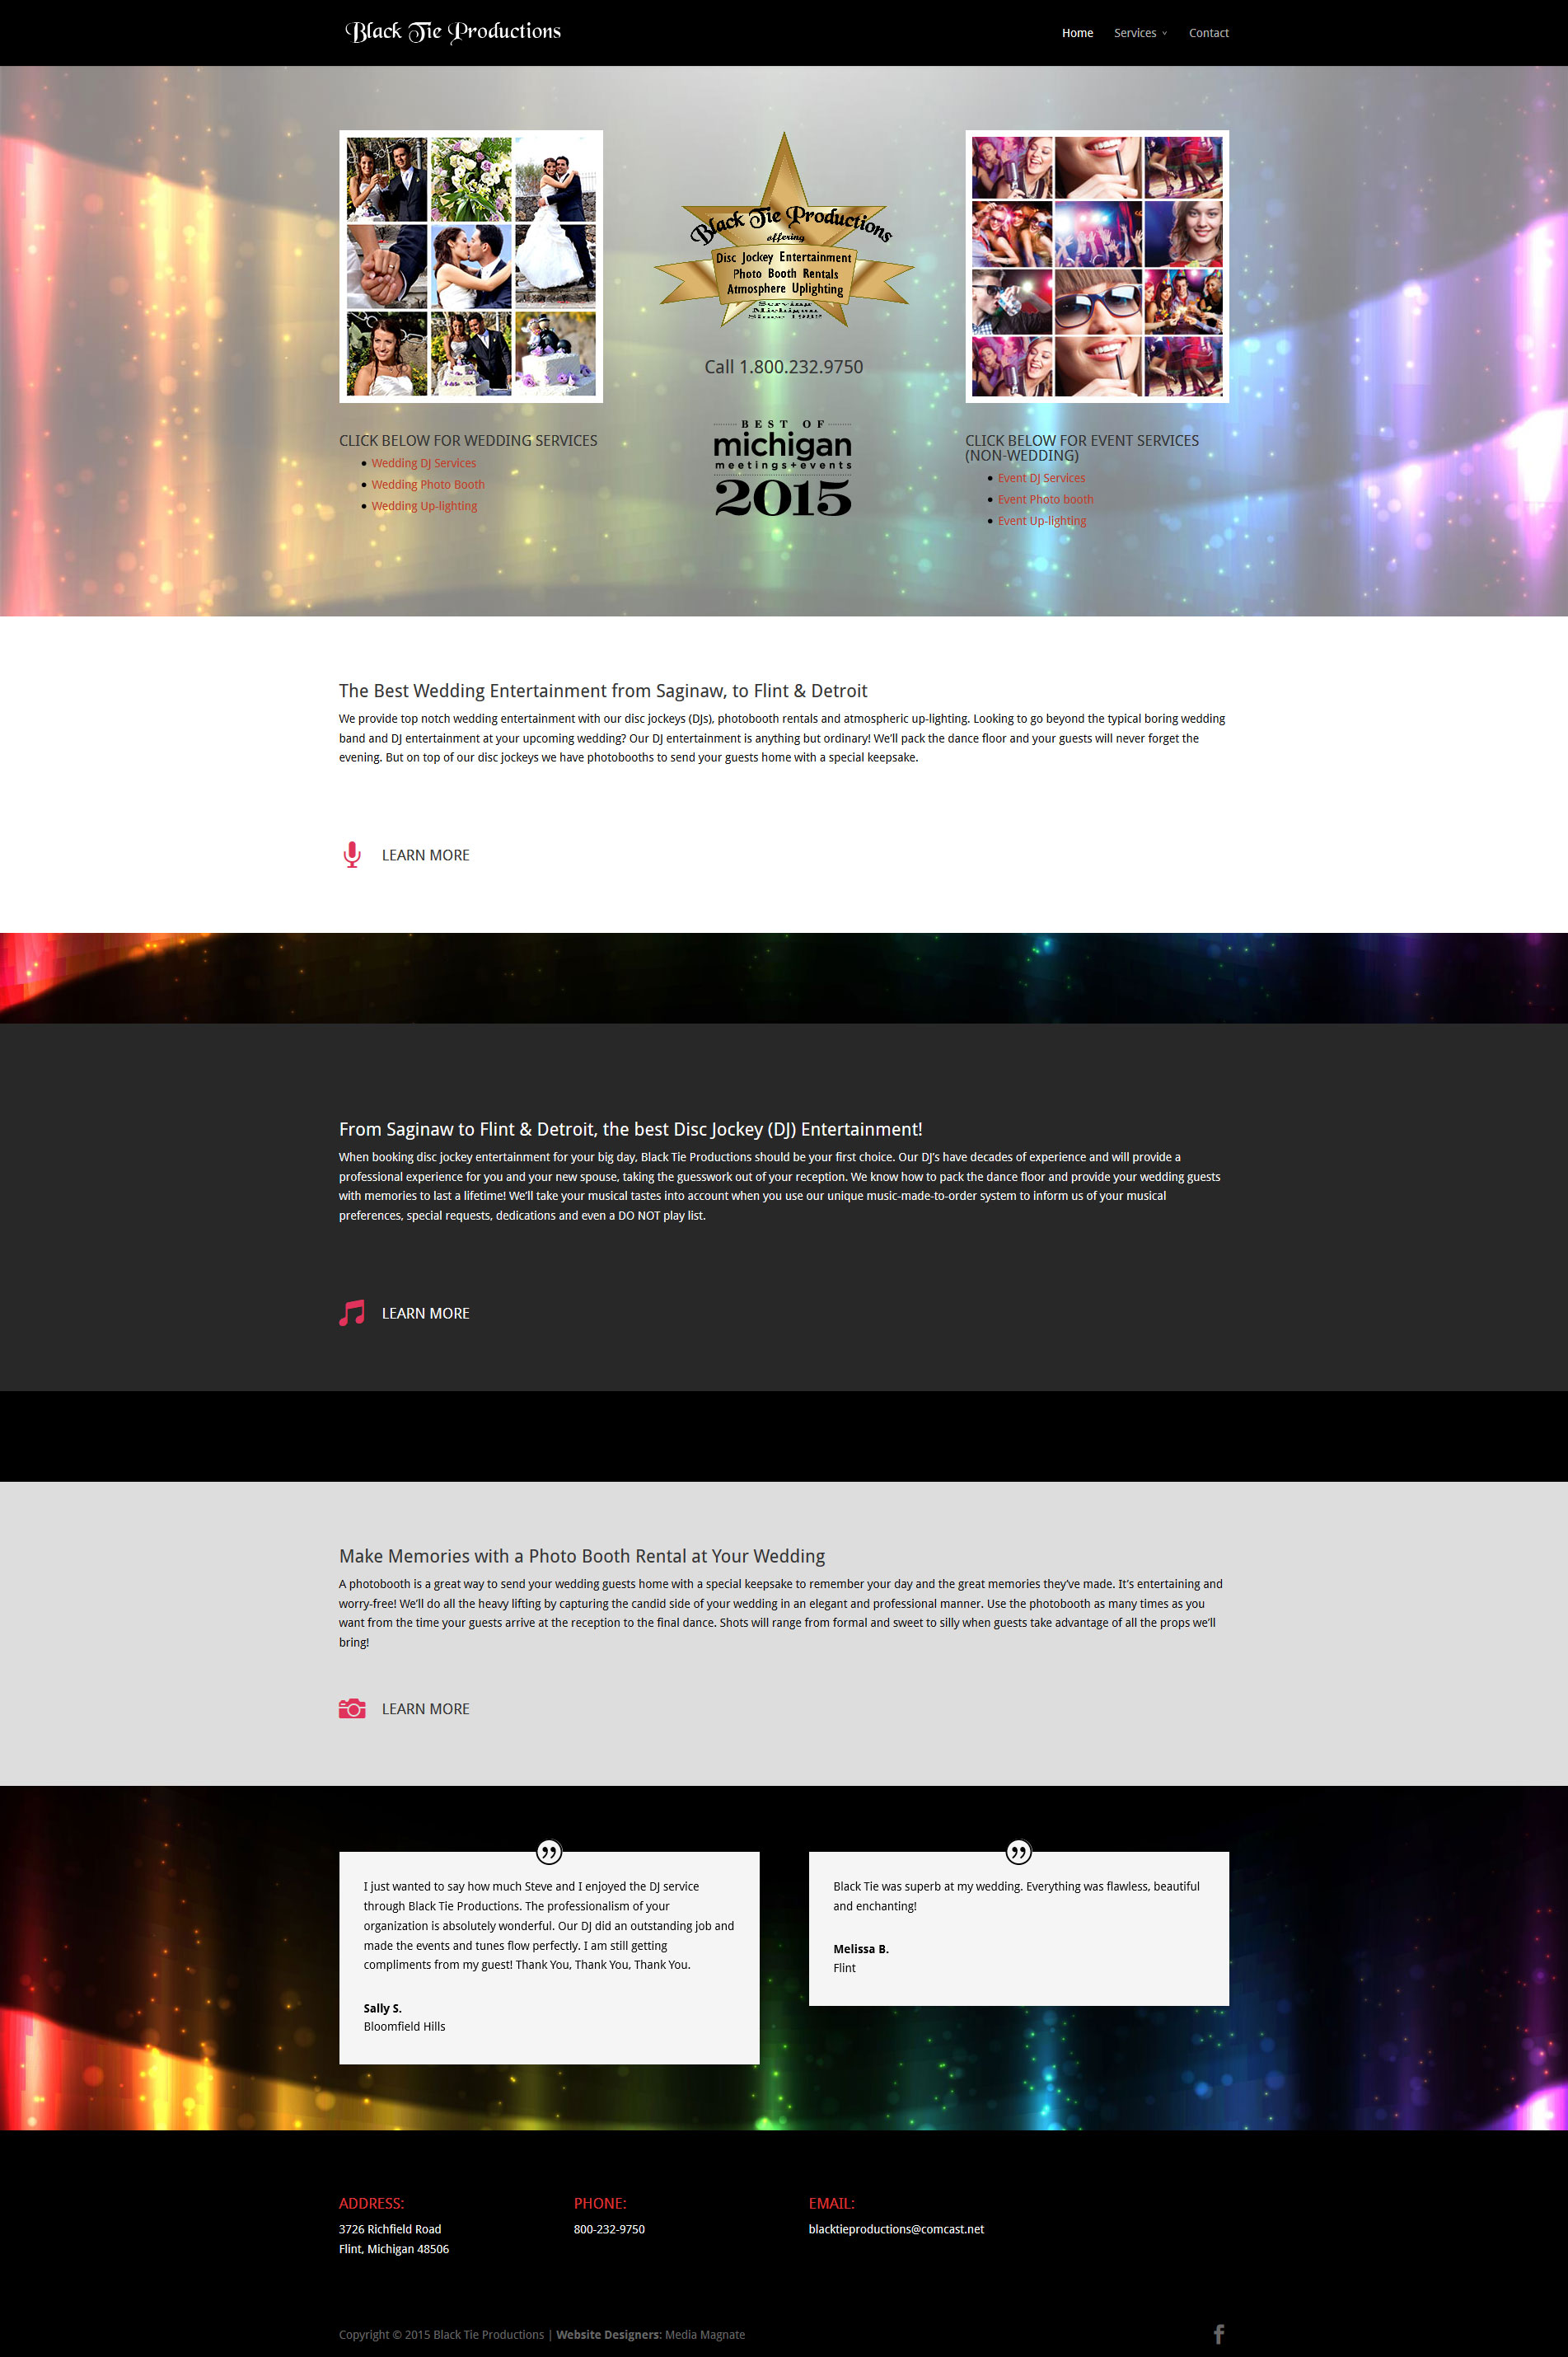 Homepage AFTER